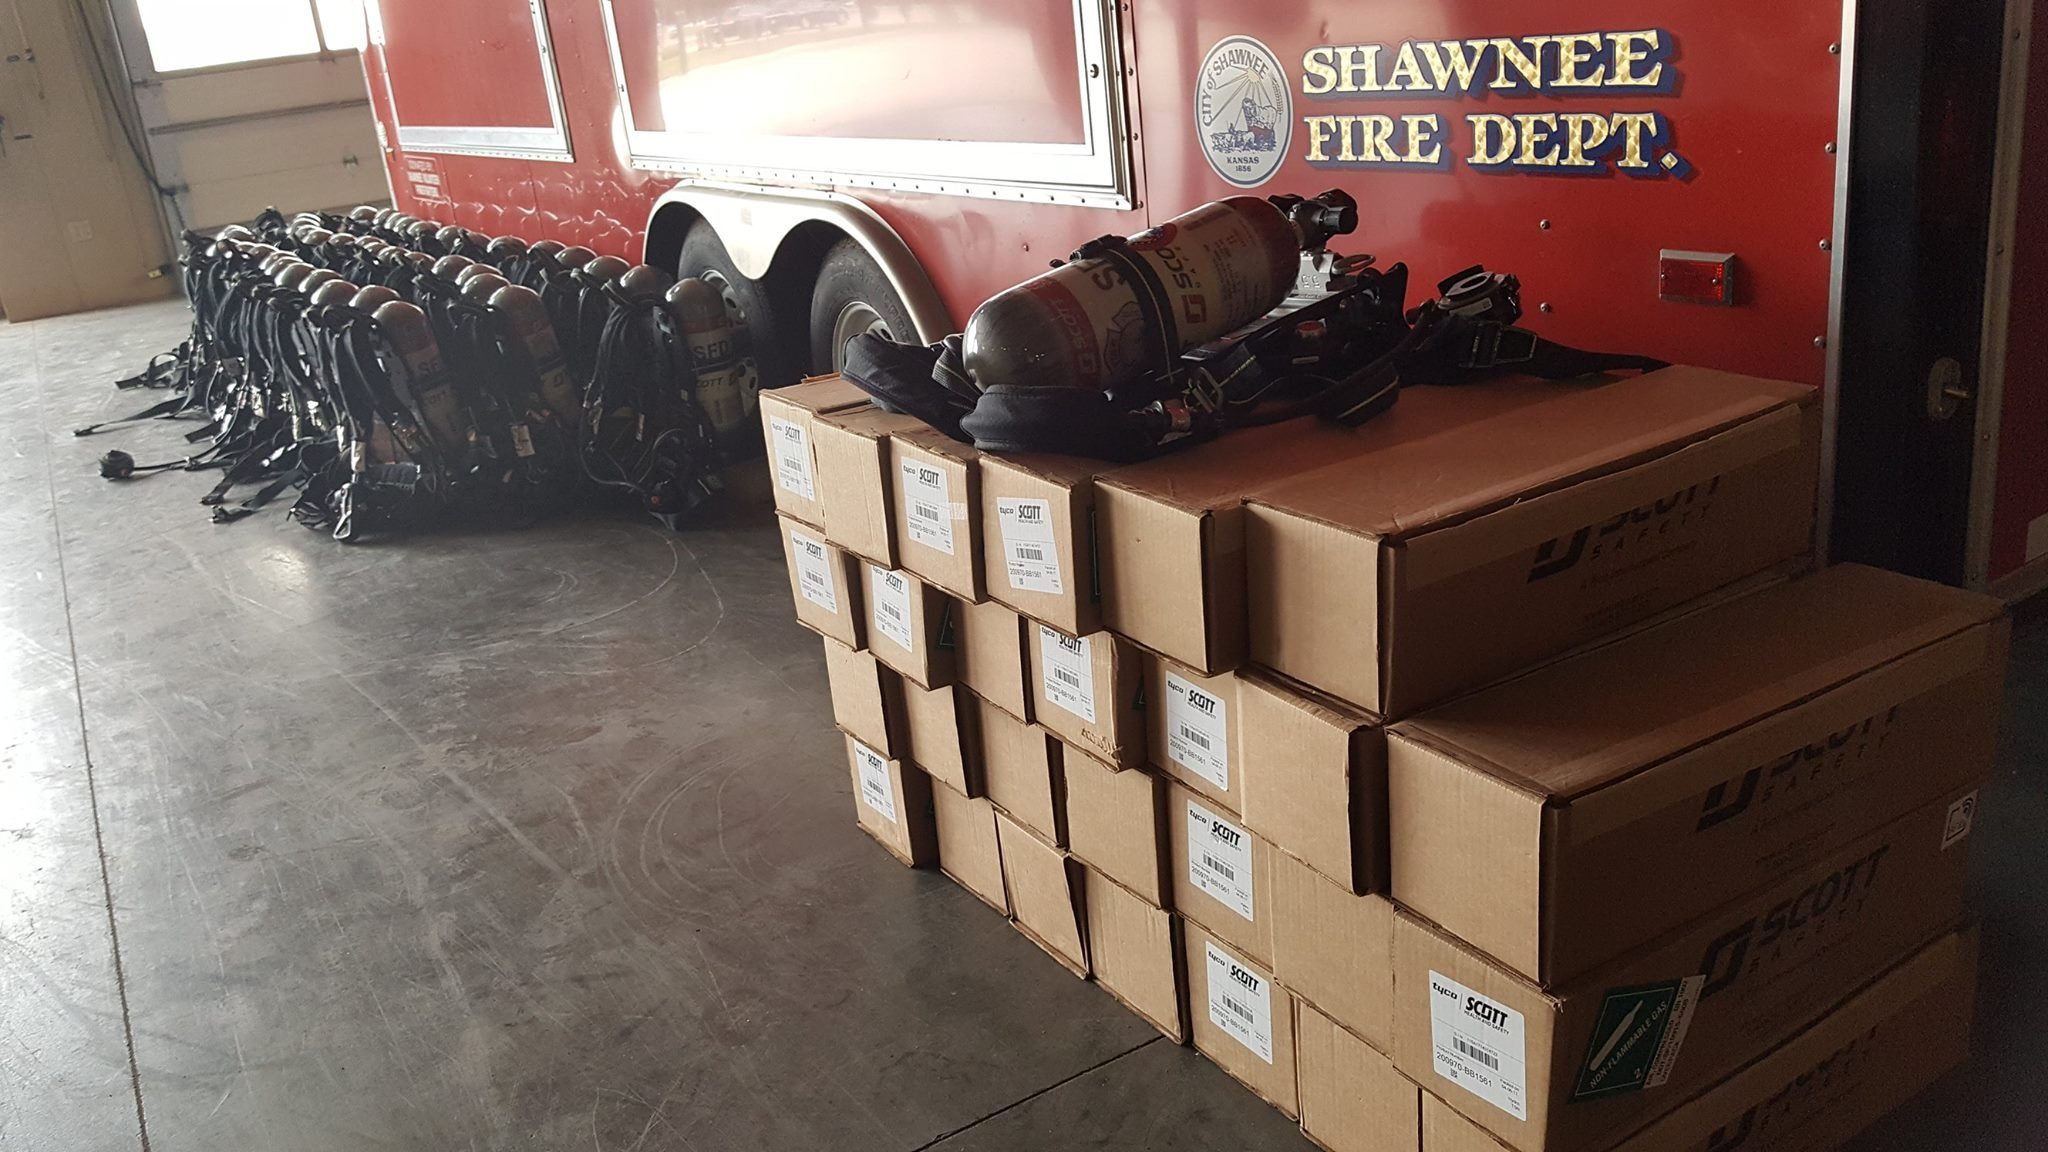 The Johnson County Fire Department received a grant of just over $2 million and used the money to purchase new breathing machines (City of Shawnee, KS Government/Facebook)